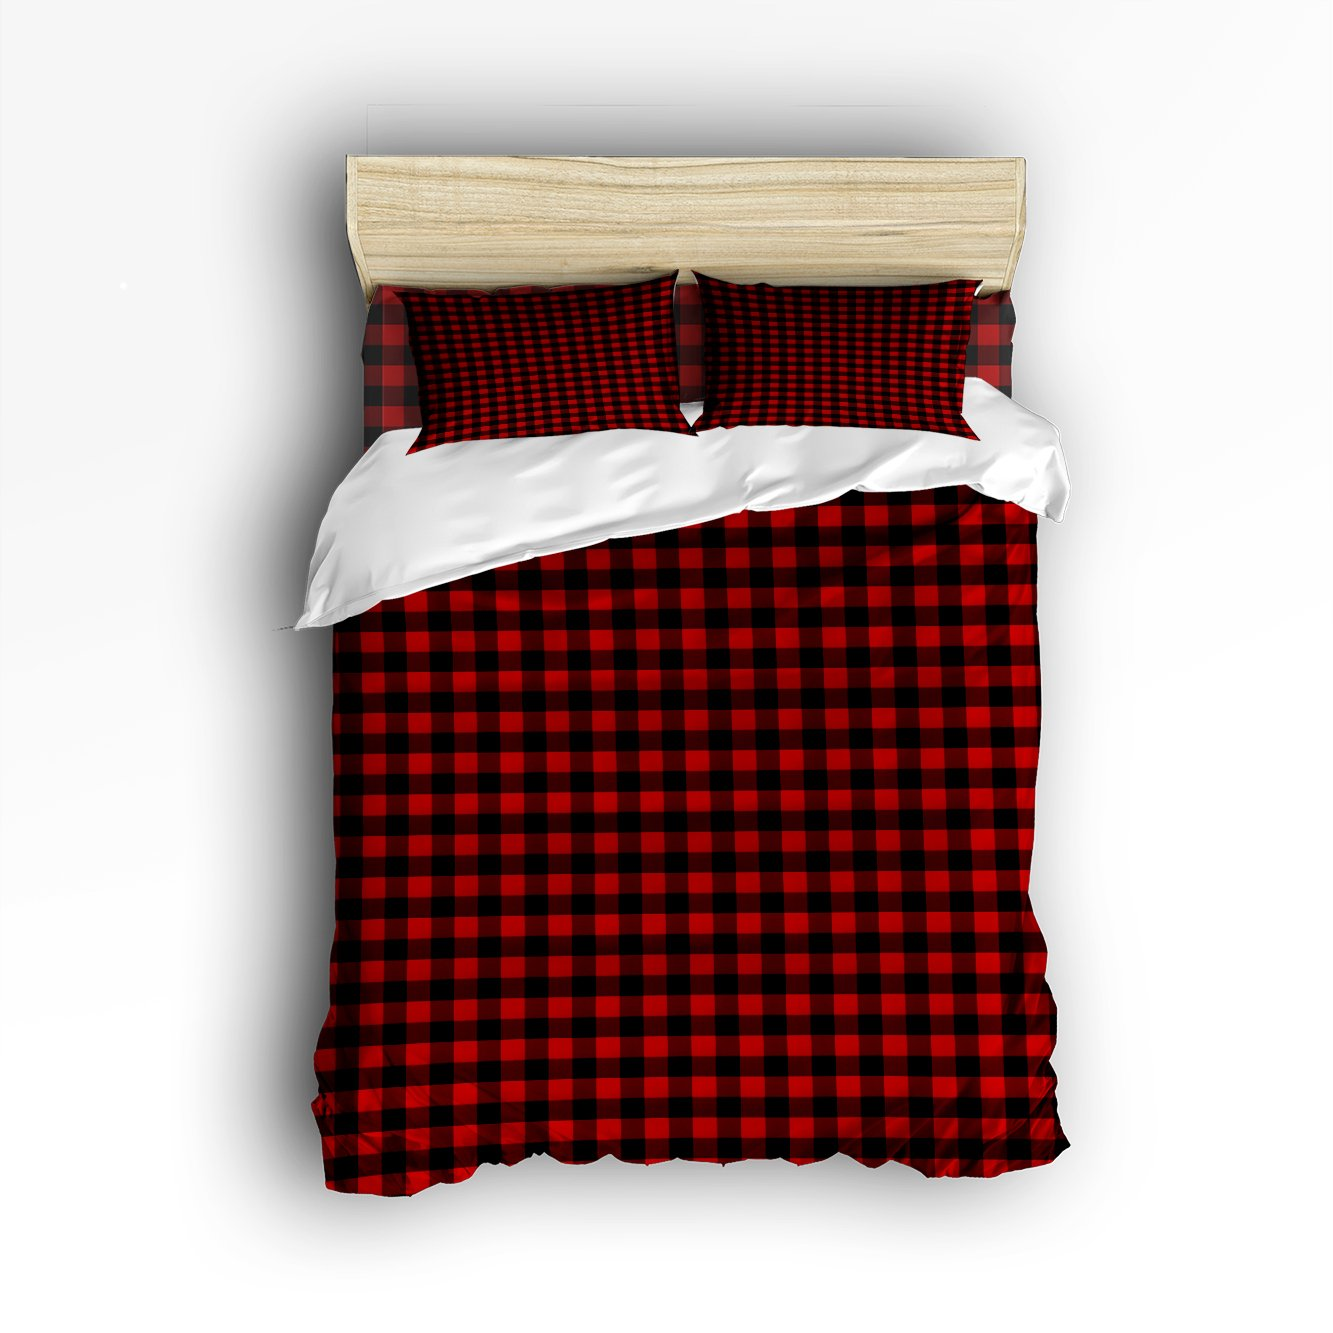 Beauty Decor Bedding 4 Piece bed Set Comfortable Soft Brushed Cotton,Rustic Red Black Buffalo Check Plaid Pattern 4 Piece Bed Sheet Set Duvet Cover Flat Sheet and 2 Pillow Cases